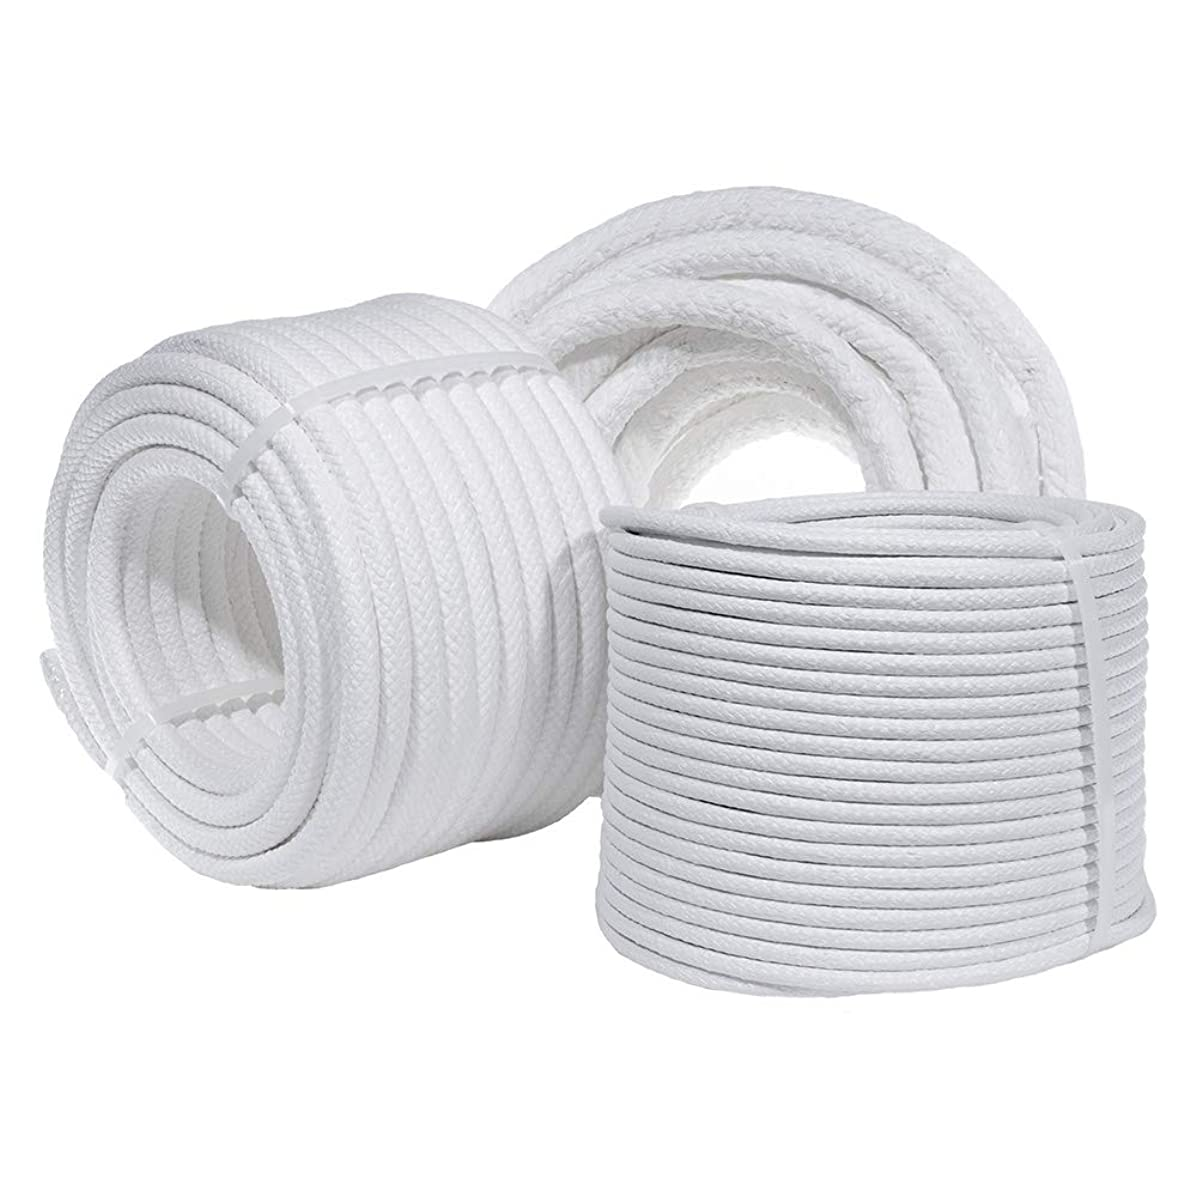 """Coiling Cord with Multiple Size and Length Variations - 3/4"""", 1/2"""" and 1/4"""" in Either 30, 50, 100, or 180ft in Length Options - Perfect for Basket Weaving"""